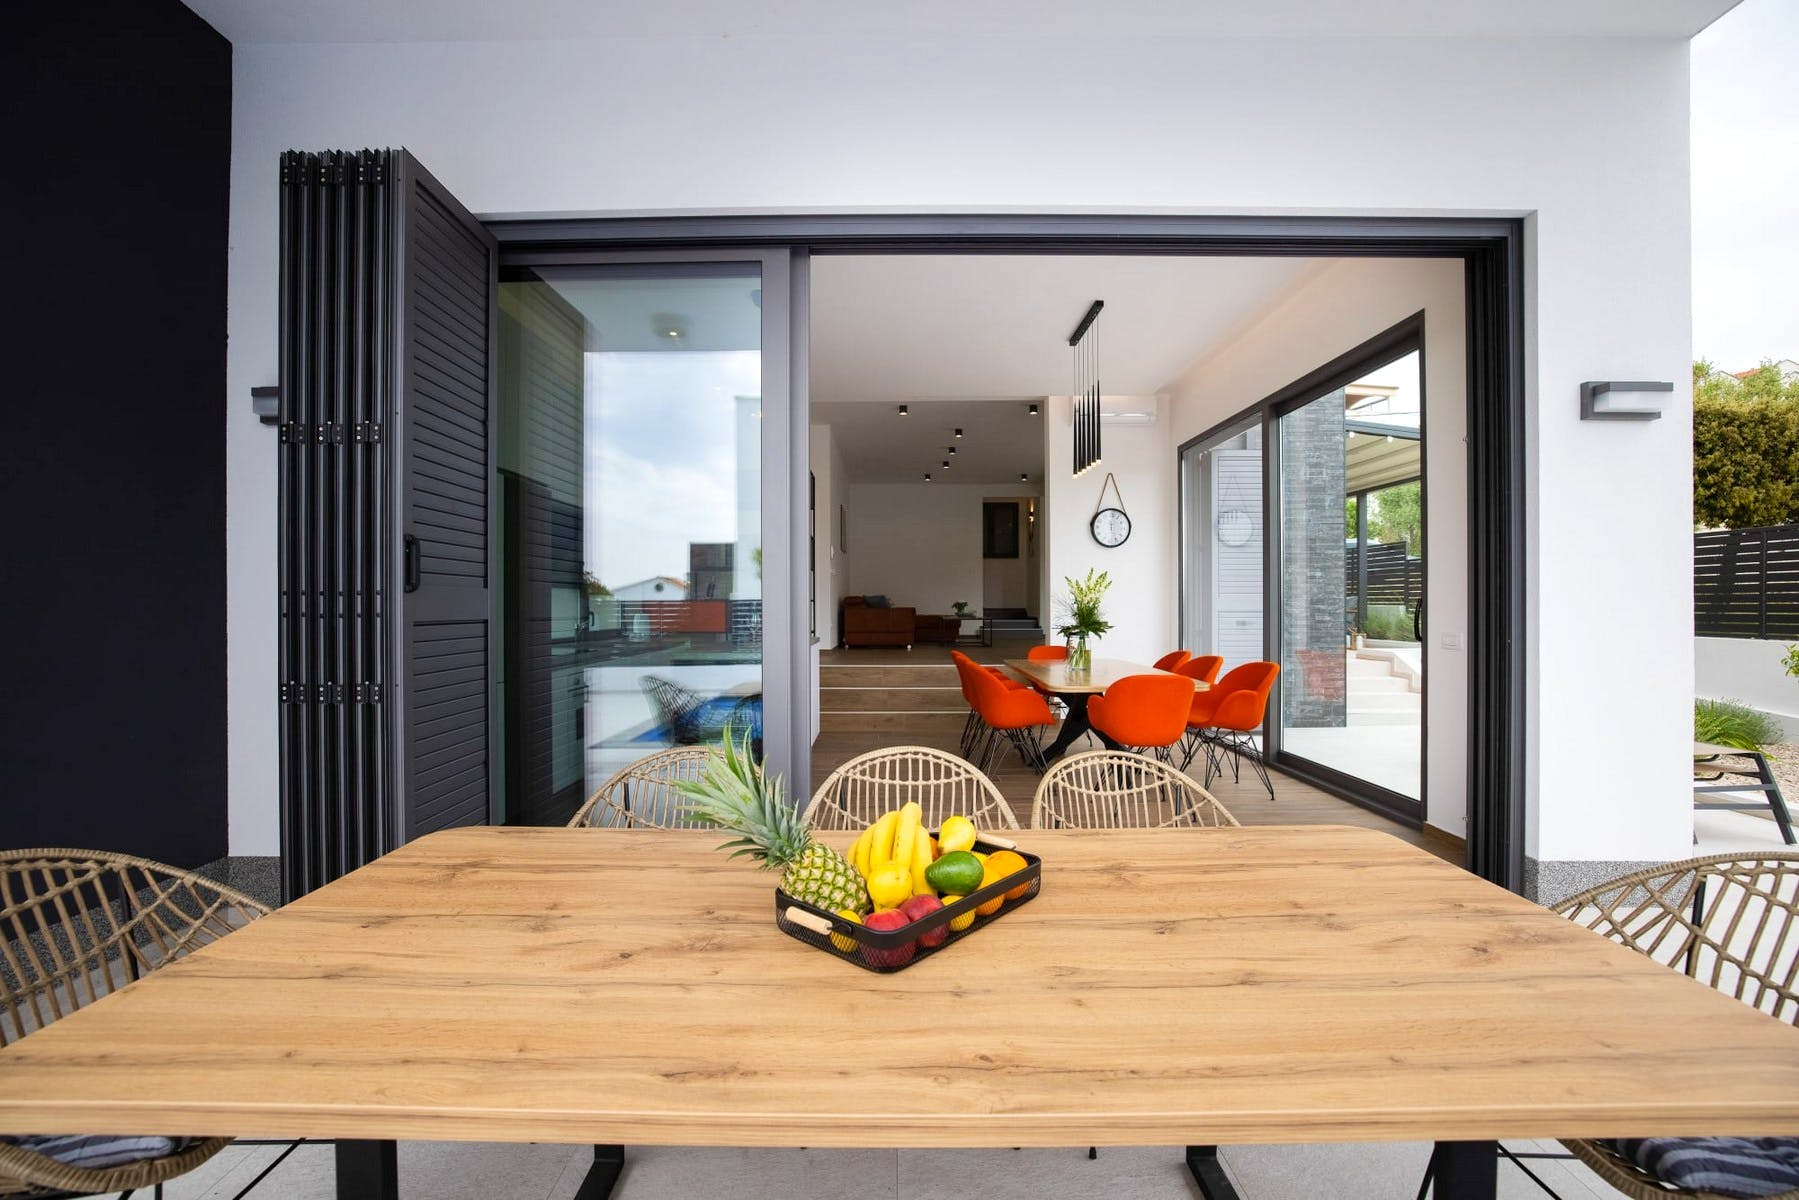 Outdoor dining area connected to the interior space